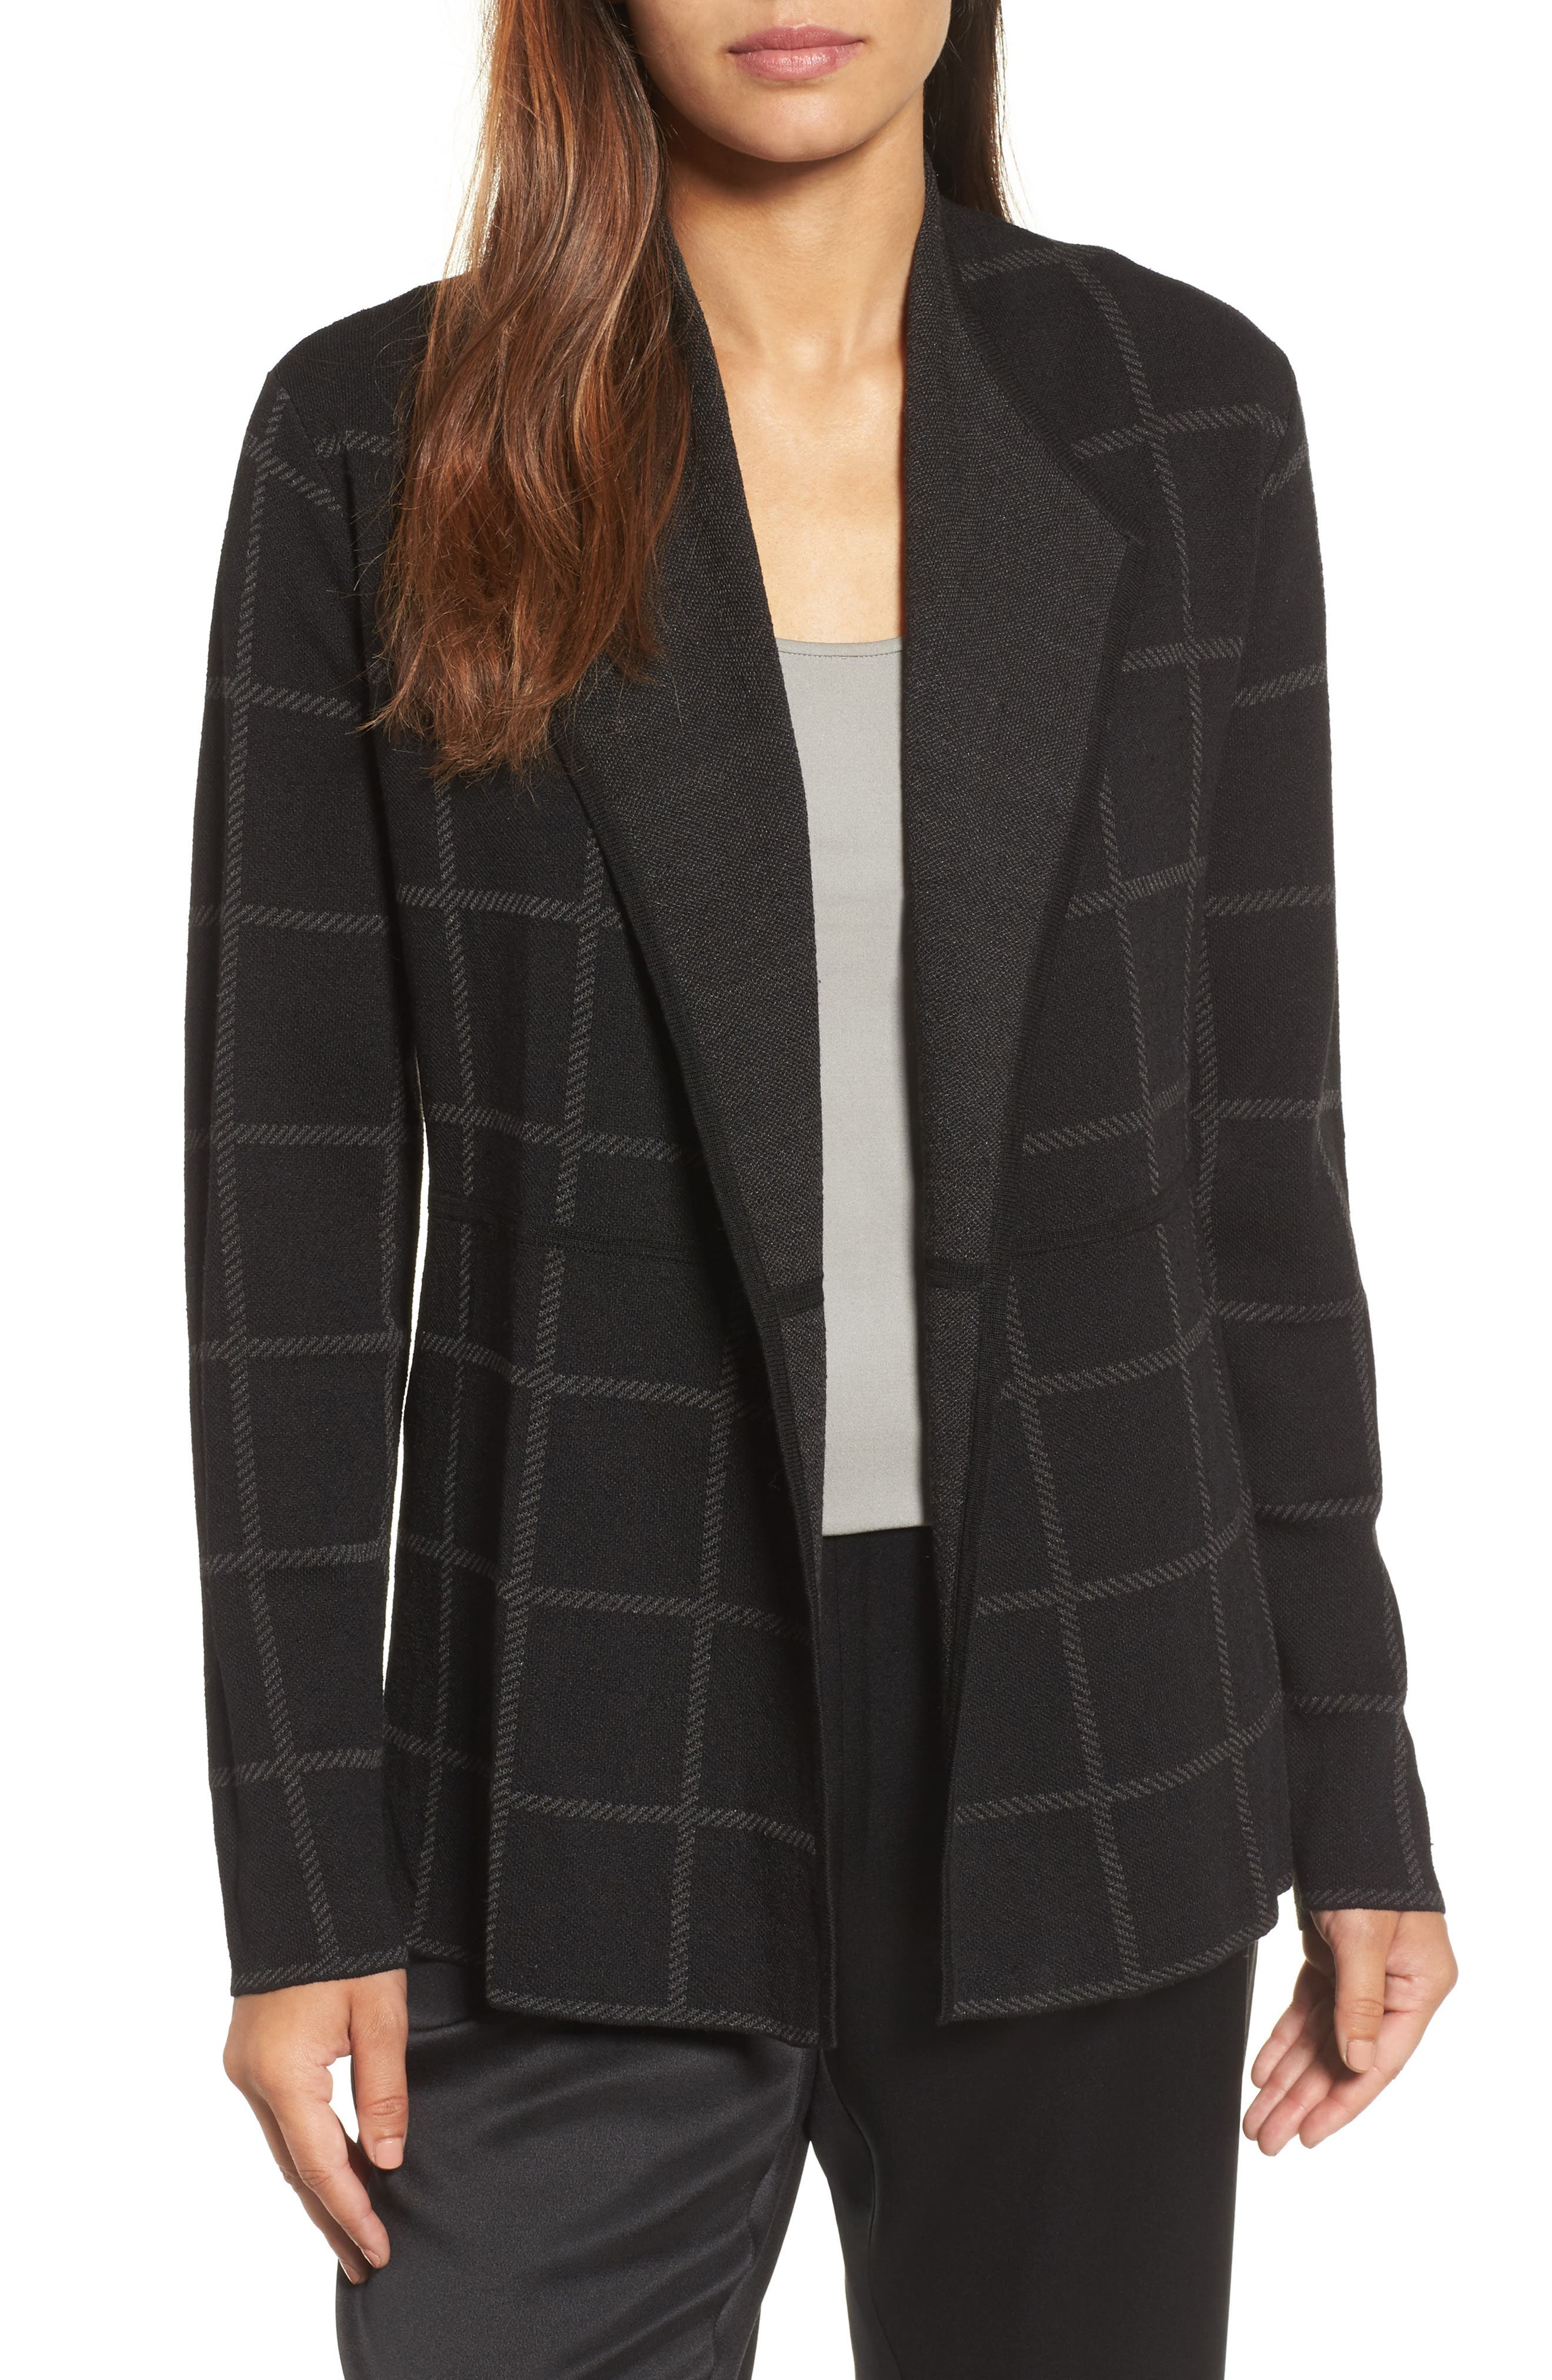 Main Image - Eileen Fisher Linen Blend Angle Front Cardigan